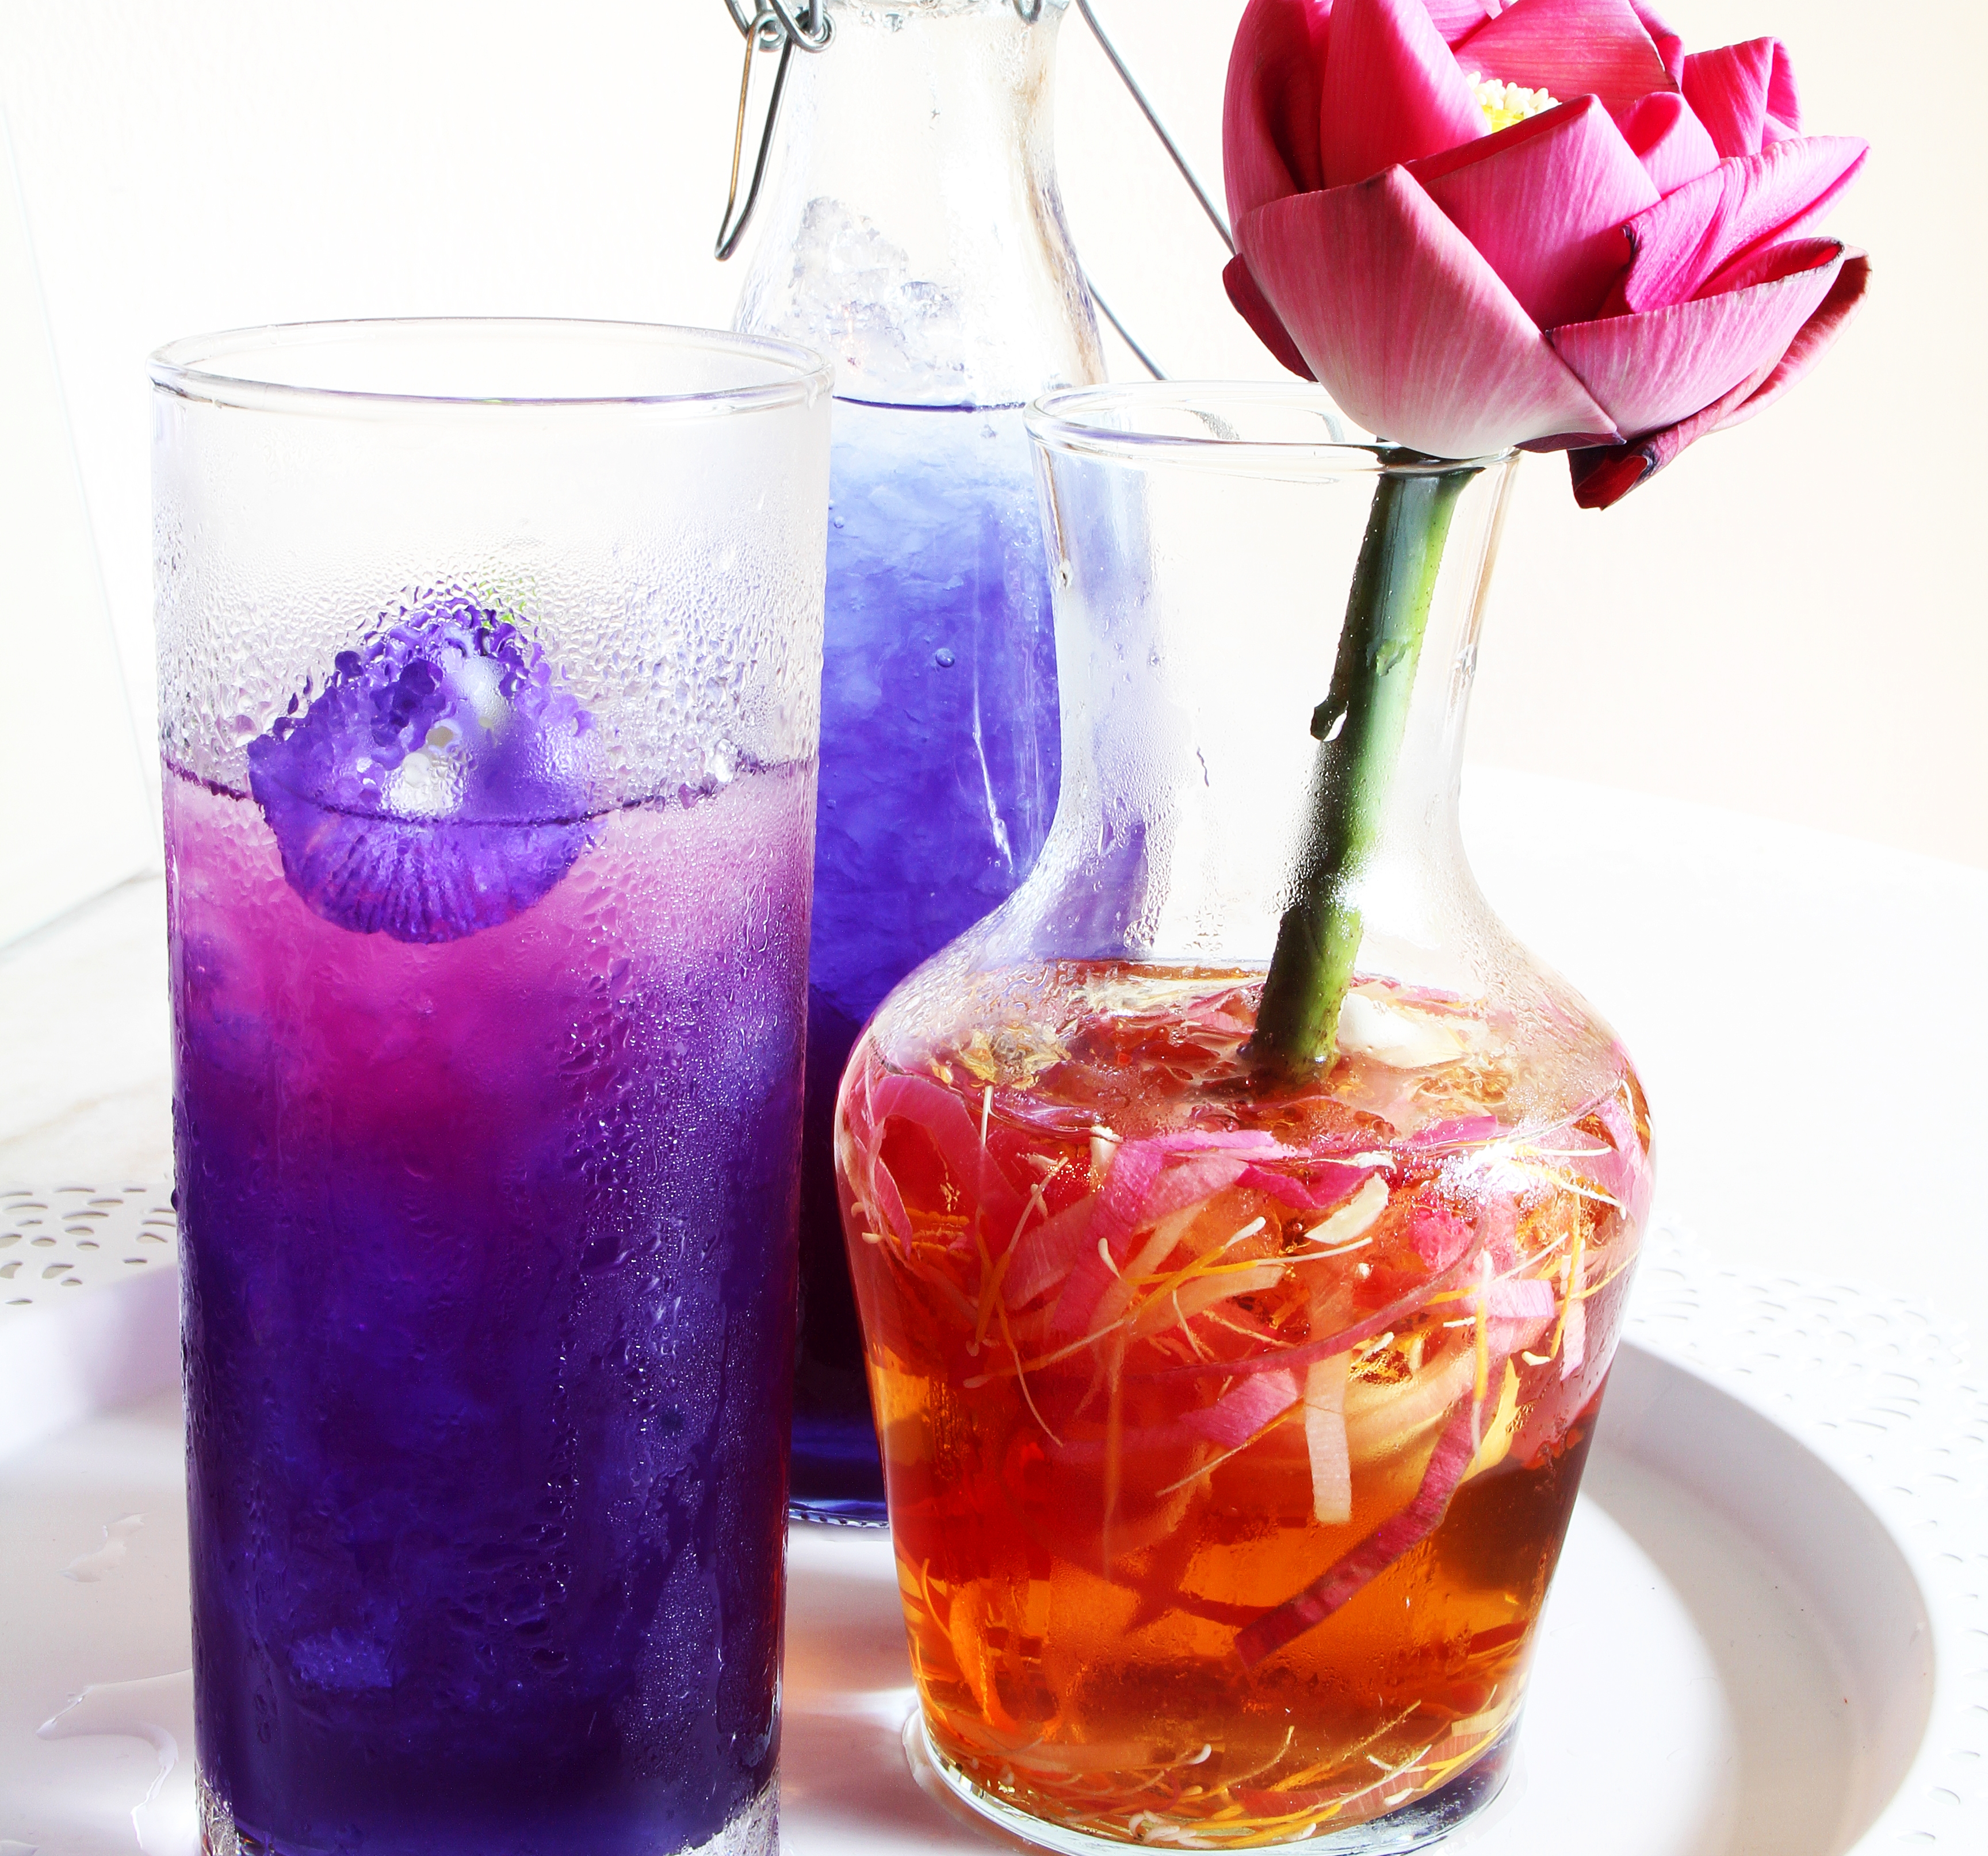 Butterfly Pea Flower and Lemongrass cooler